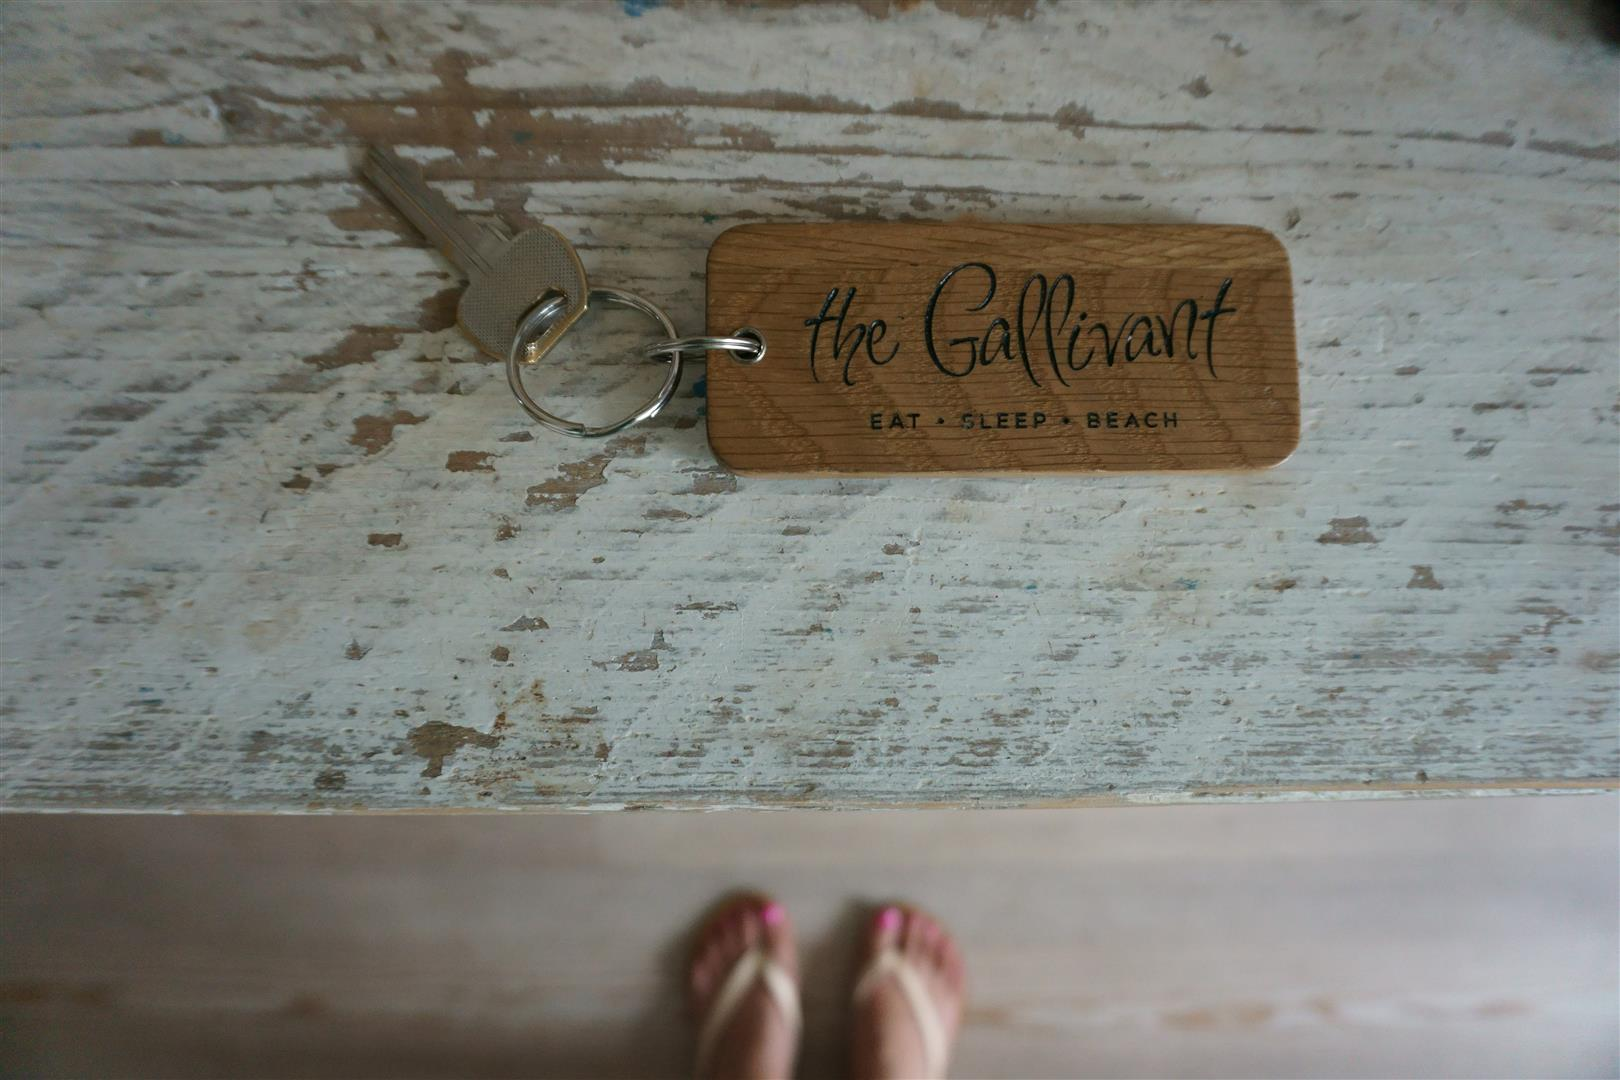 The Gallivant - hotel key